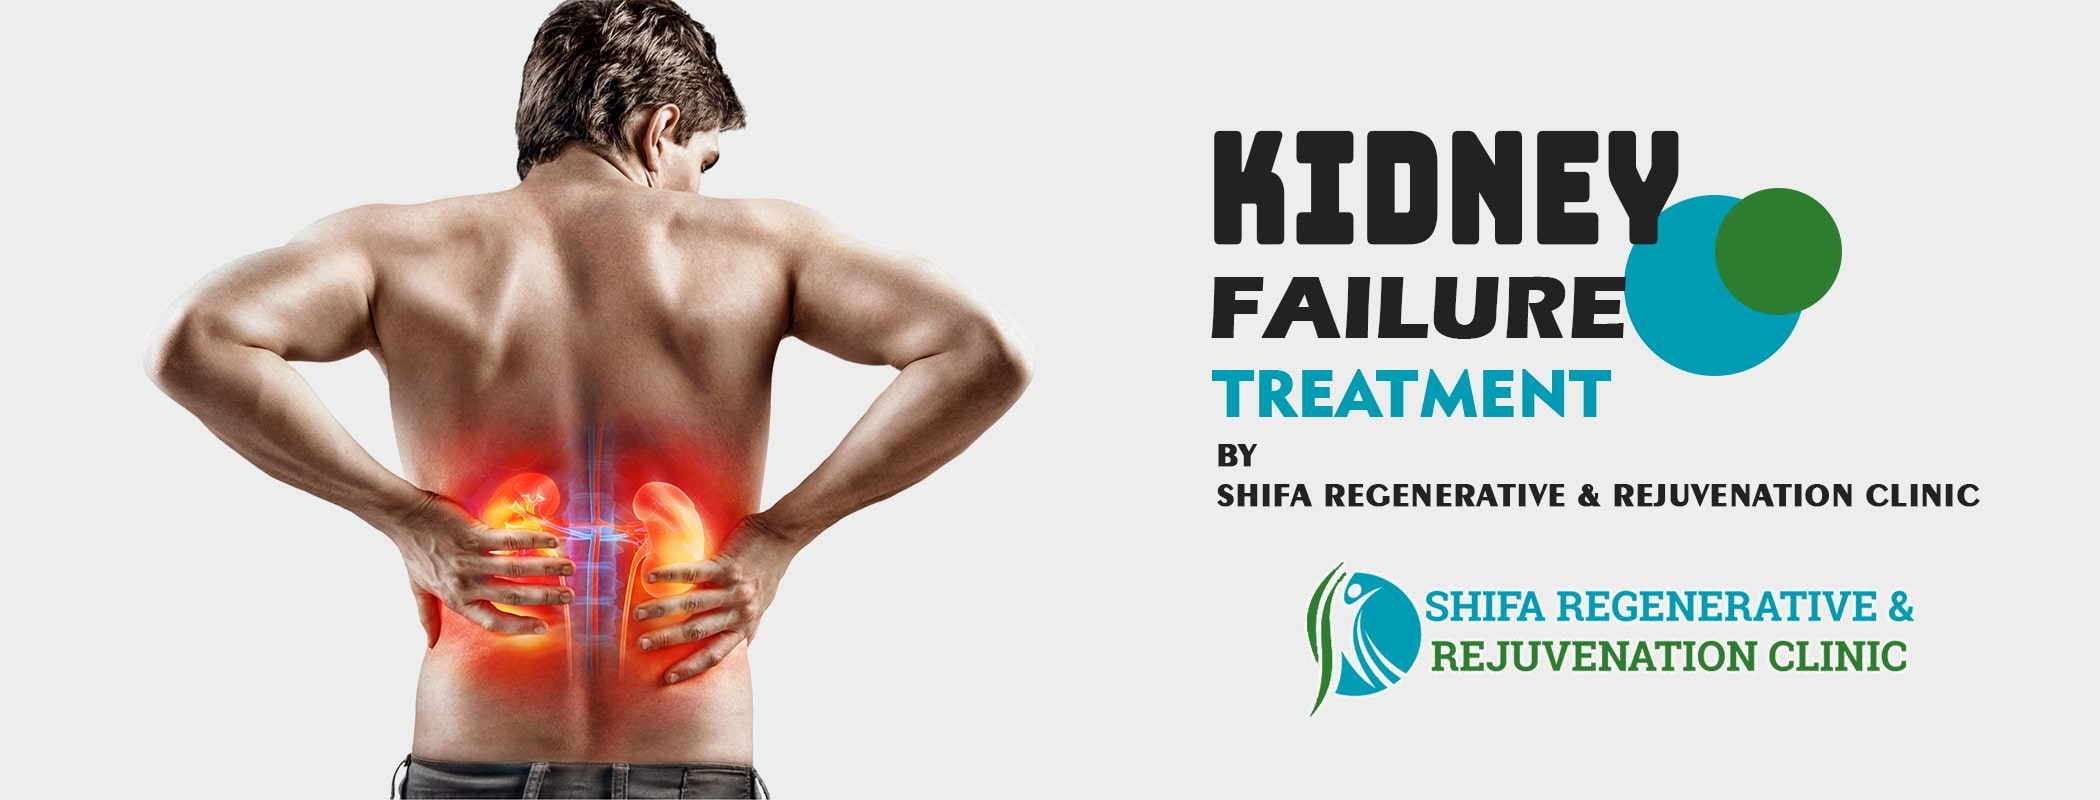 Kidney Failure Treatment - Shifa Regenerative and Rejuvenation Clinic